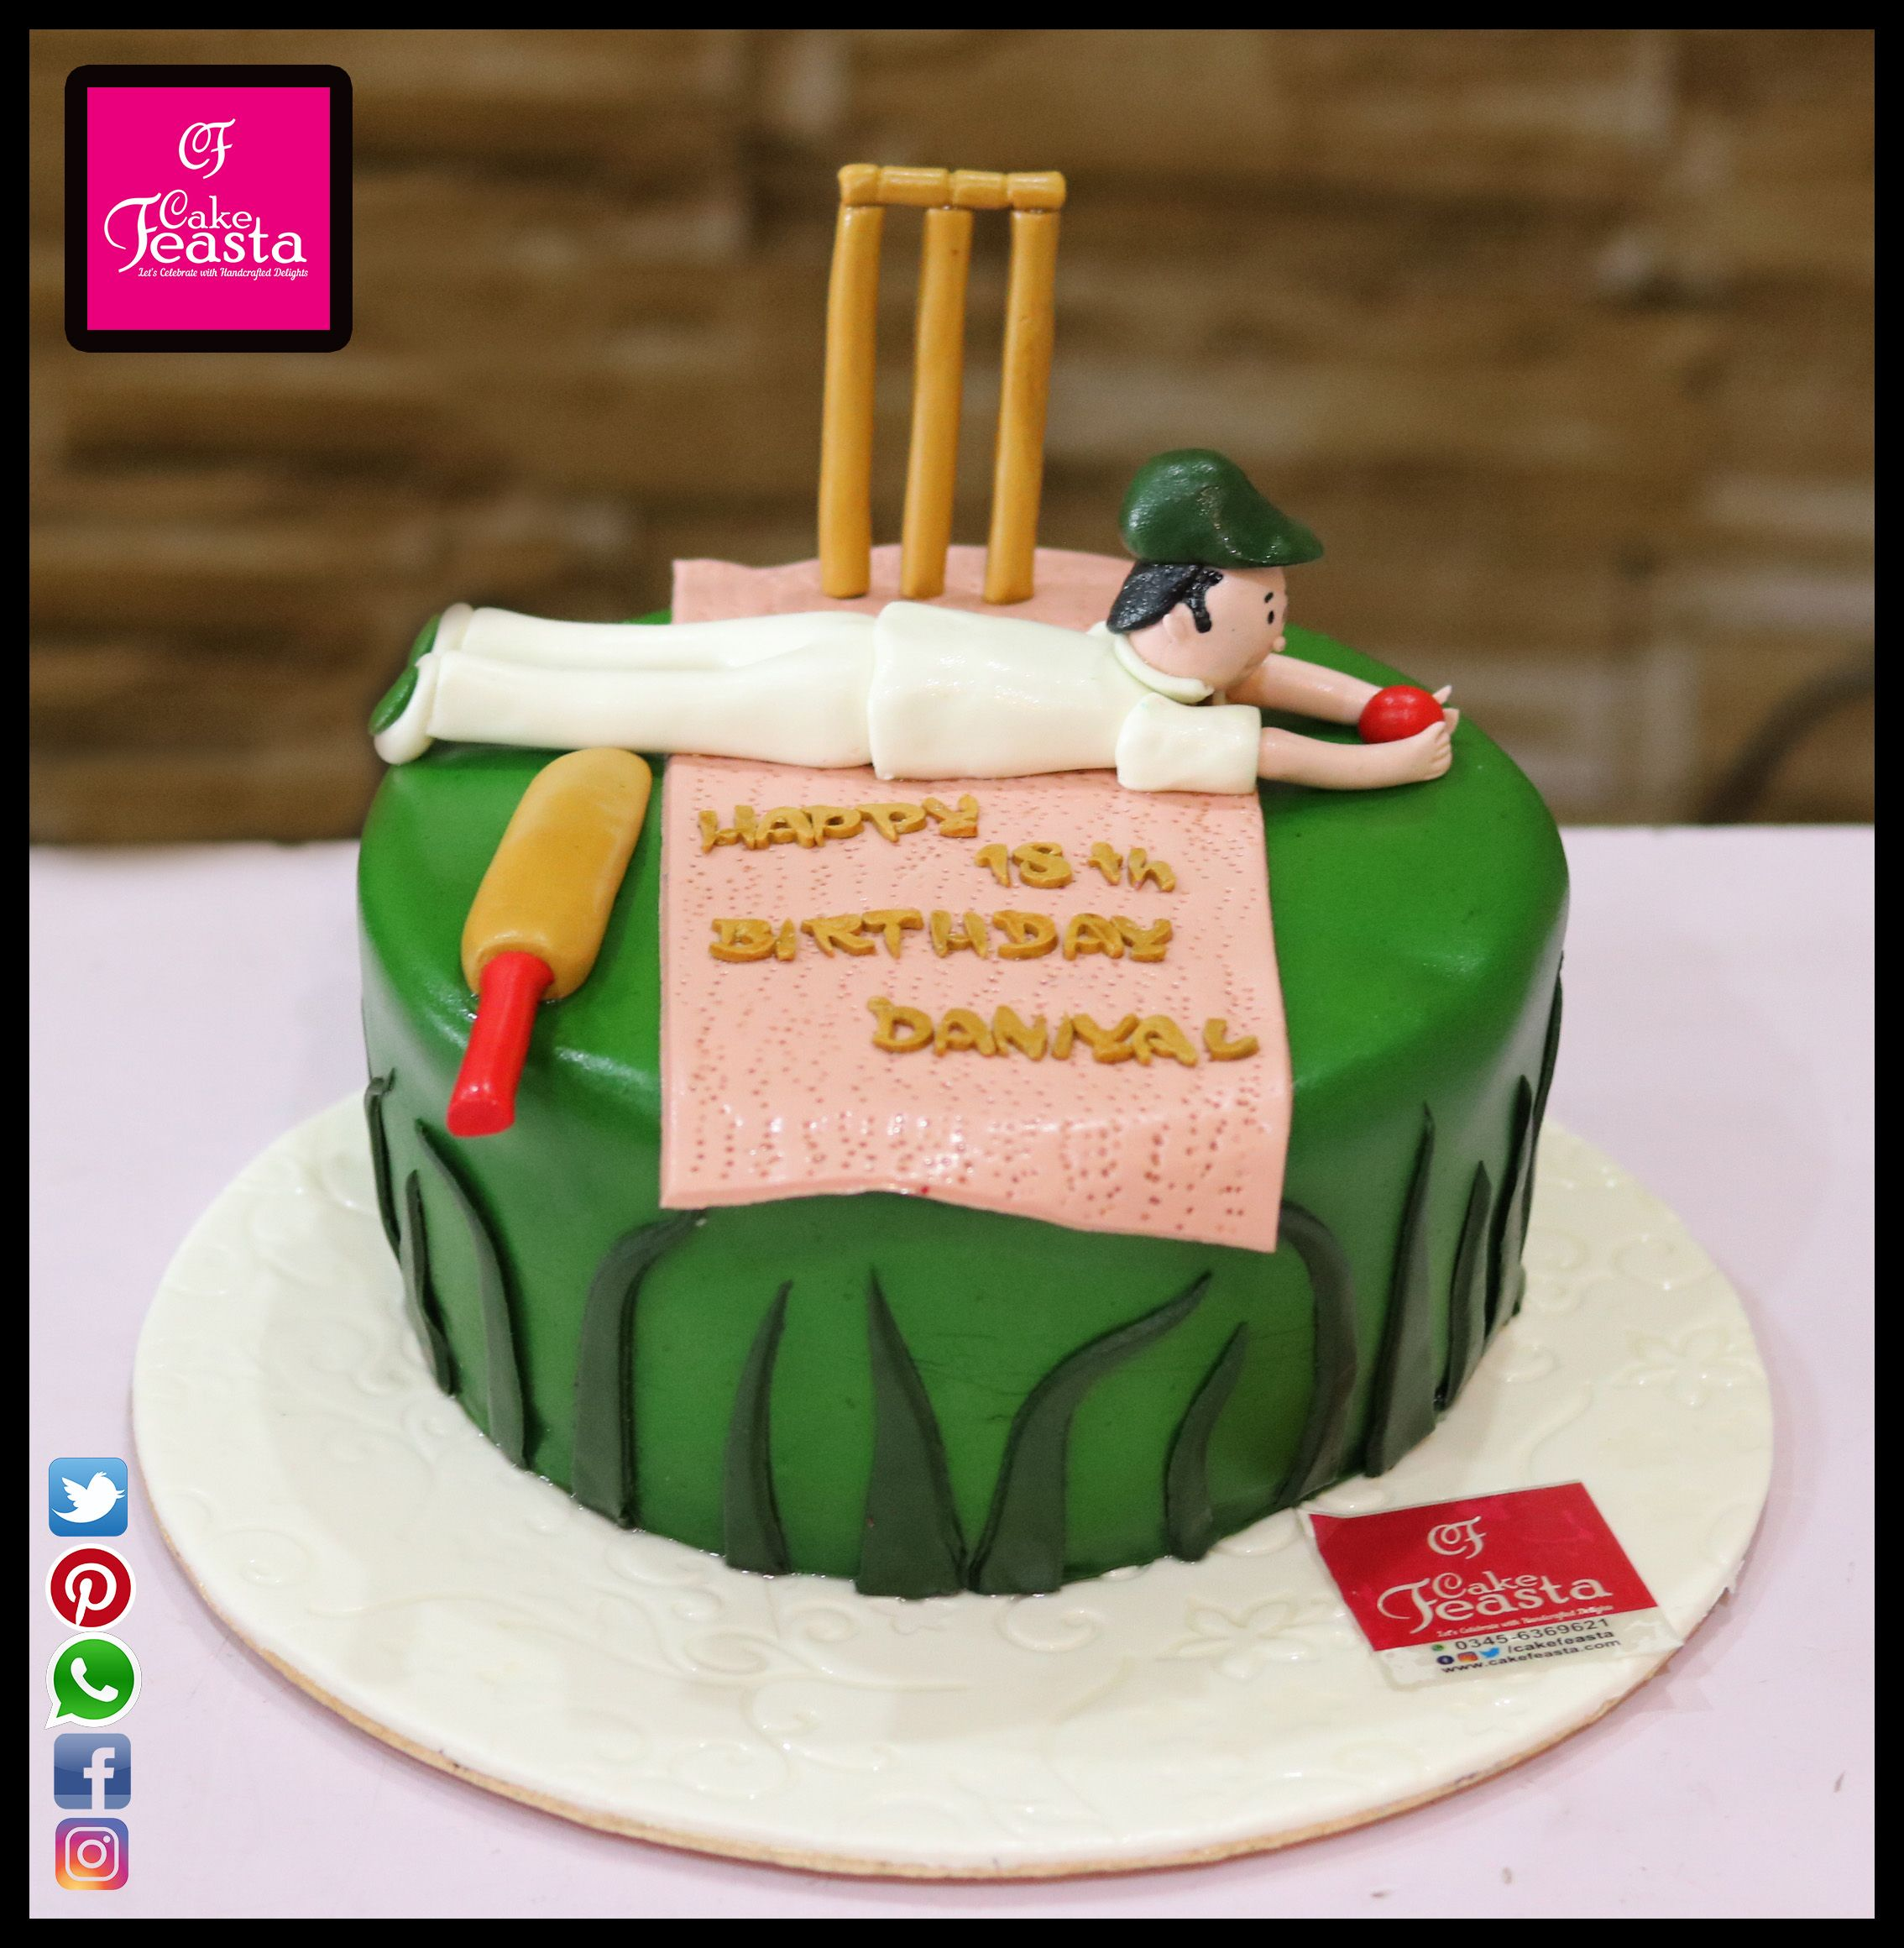 Cricket Lovers Birthday Cake For Order 2 or more than 2